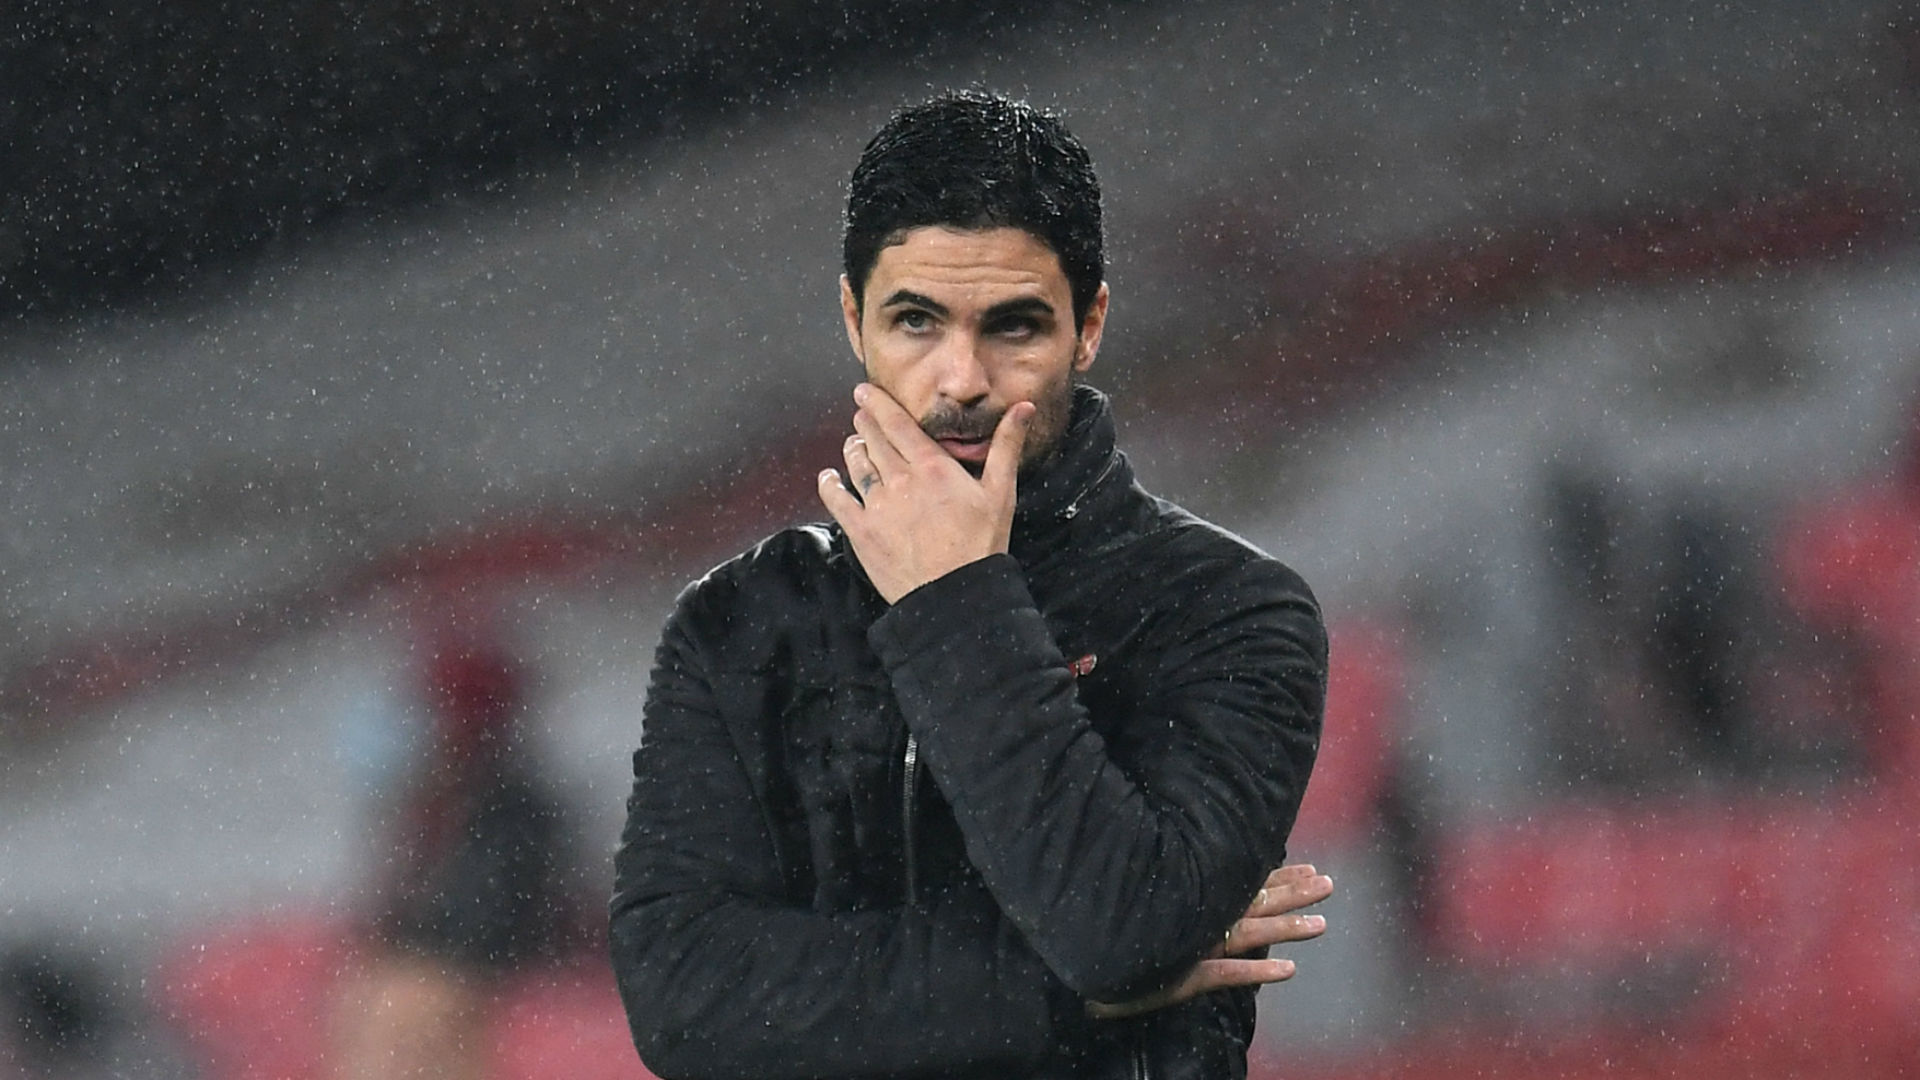 Arteta gearing up for Arsenal transfer window: Now is the time to evolve